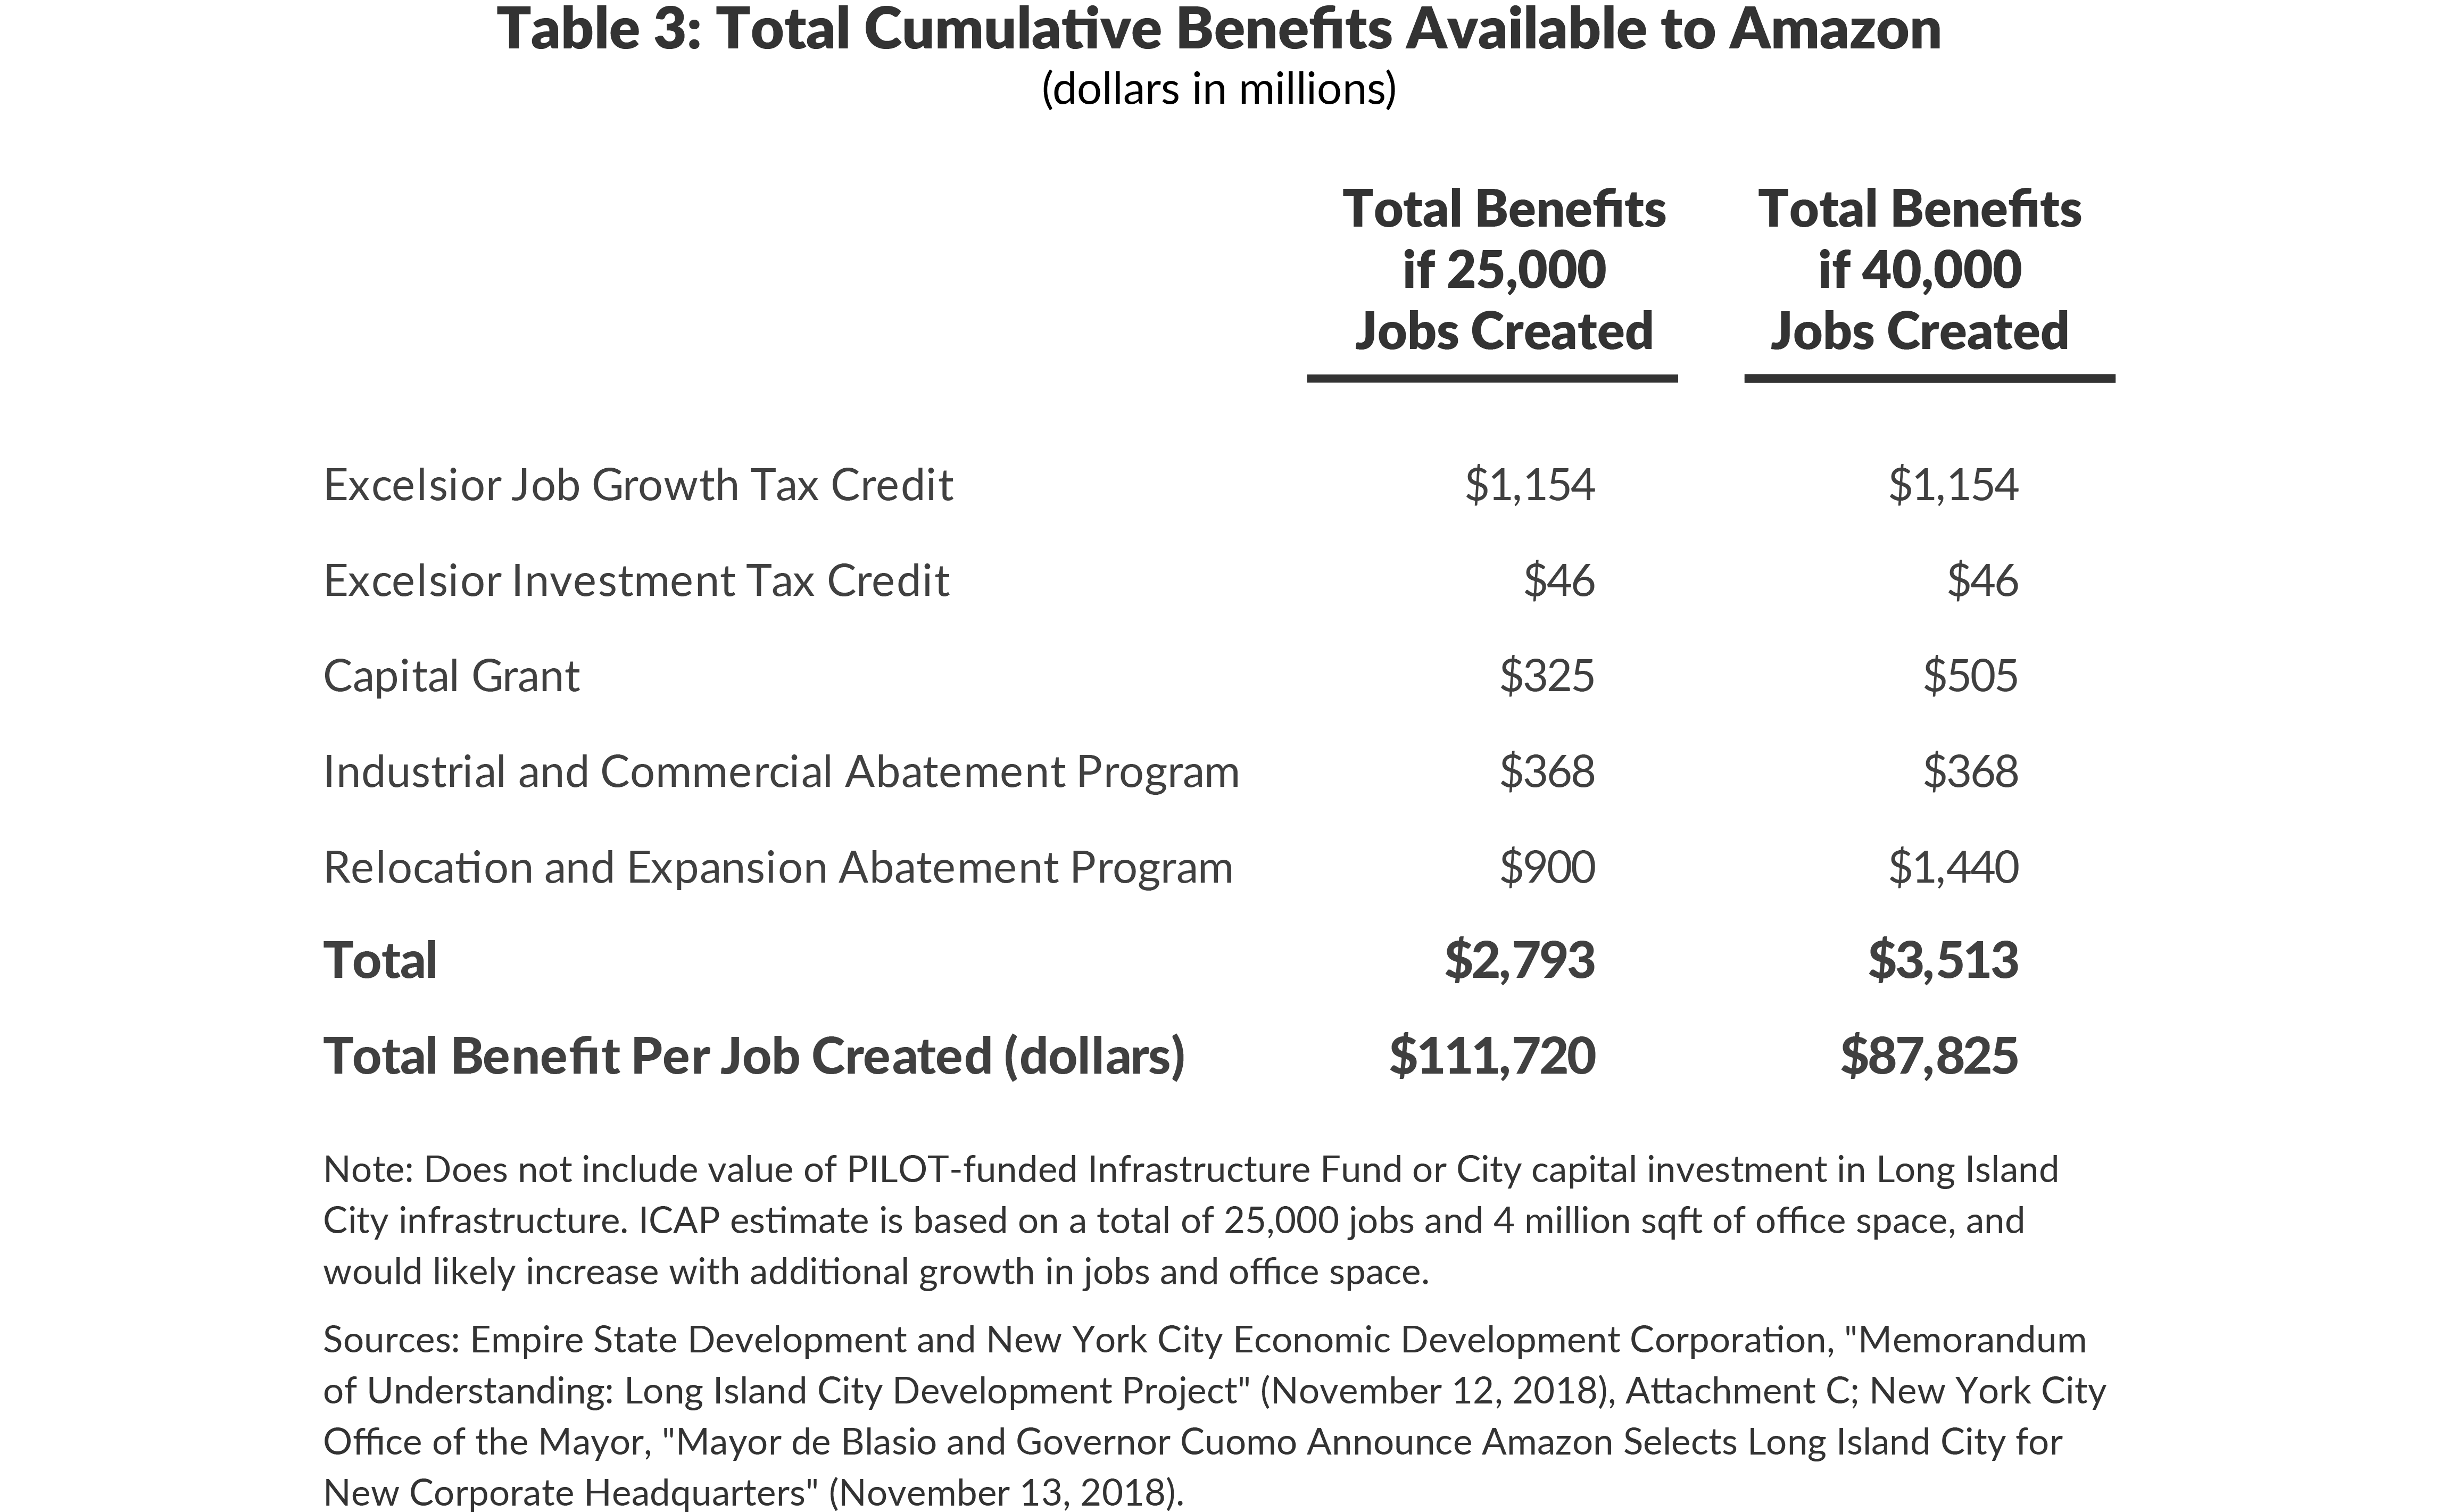 Table 3: Total Cumulative Benefits Available to Amazon